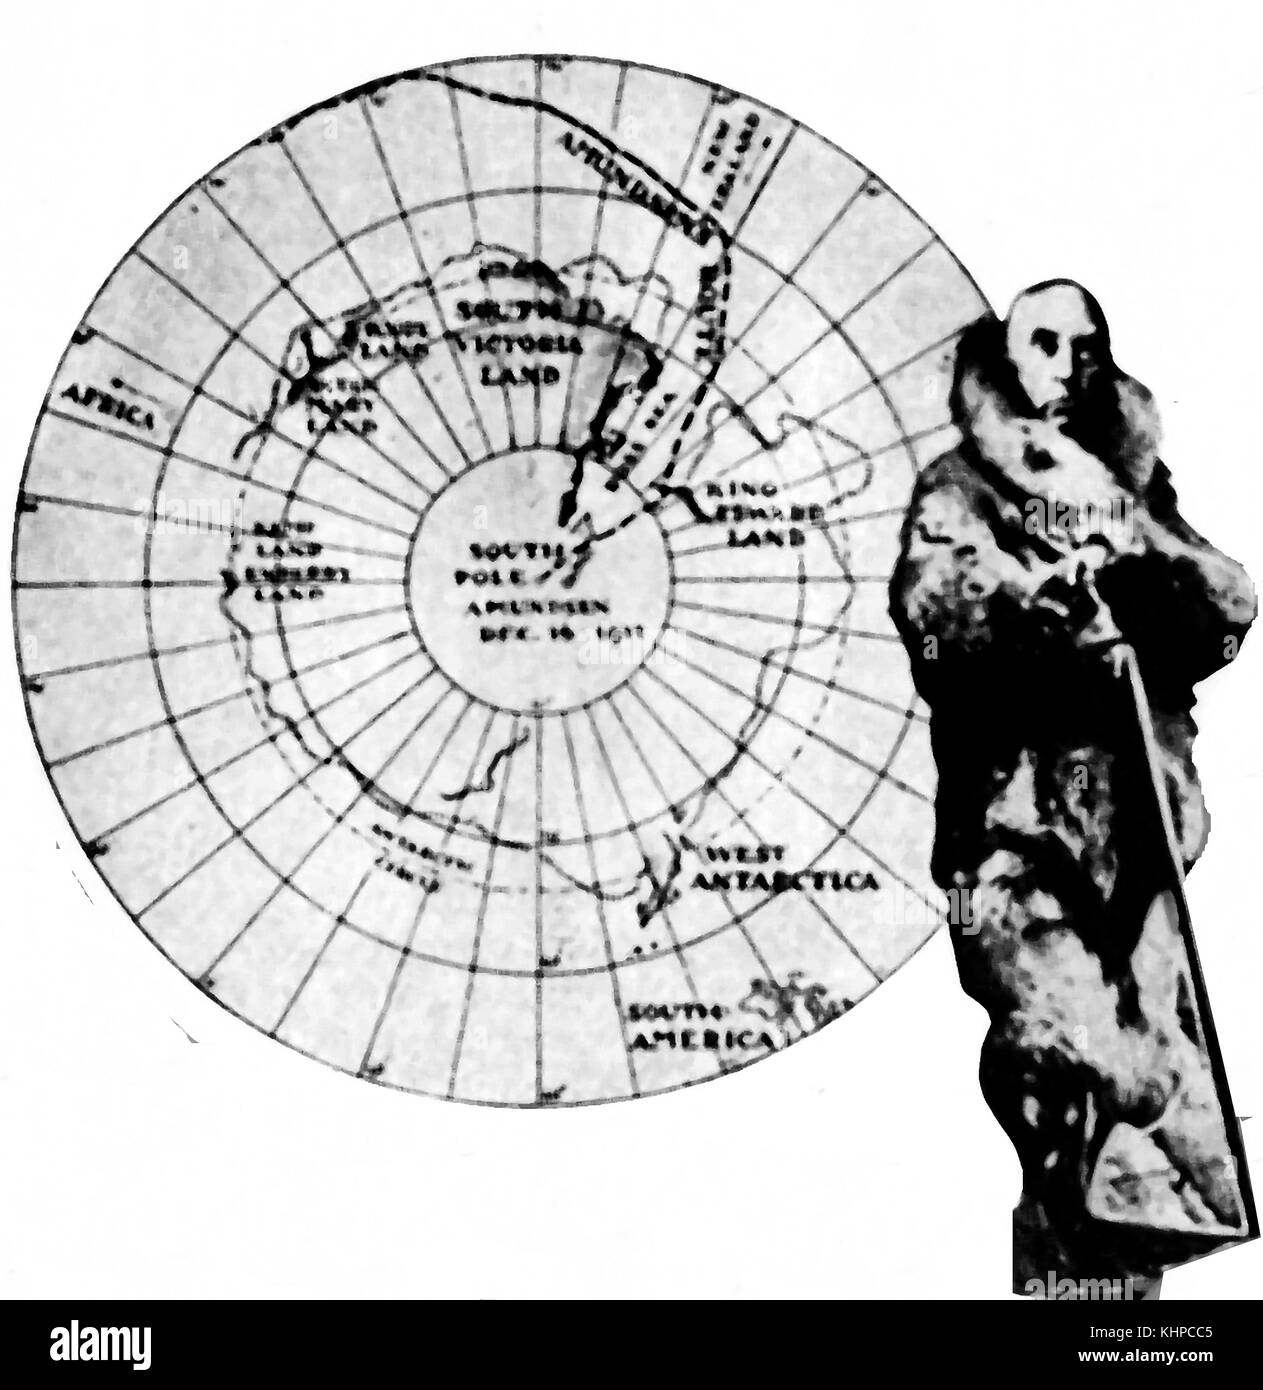 Roald Engelbregt Gravning Amundsen the Norwegian Antarctic explorer with a map of his journey of discovery to the South Pole - From a small 1935 magazine illustration Stock Photo